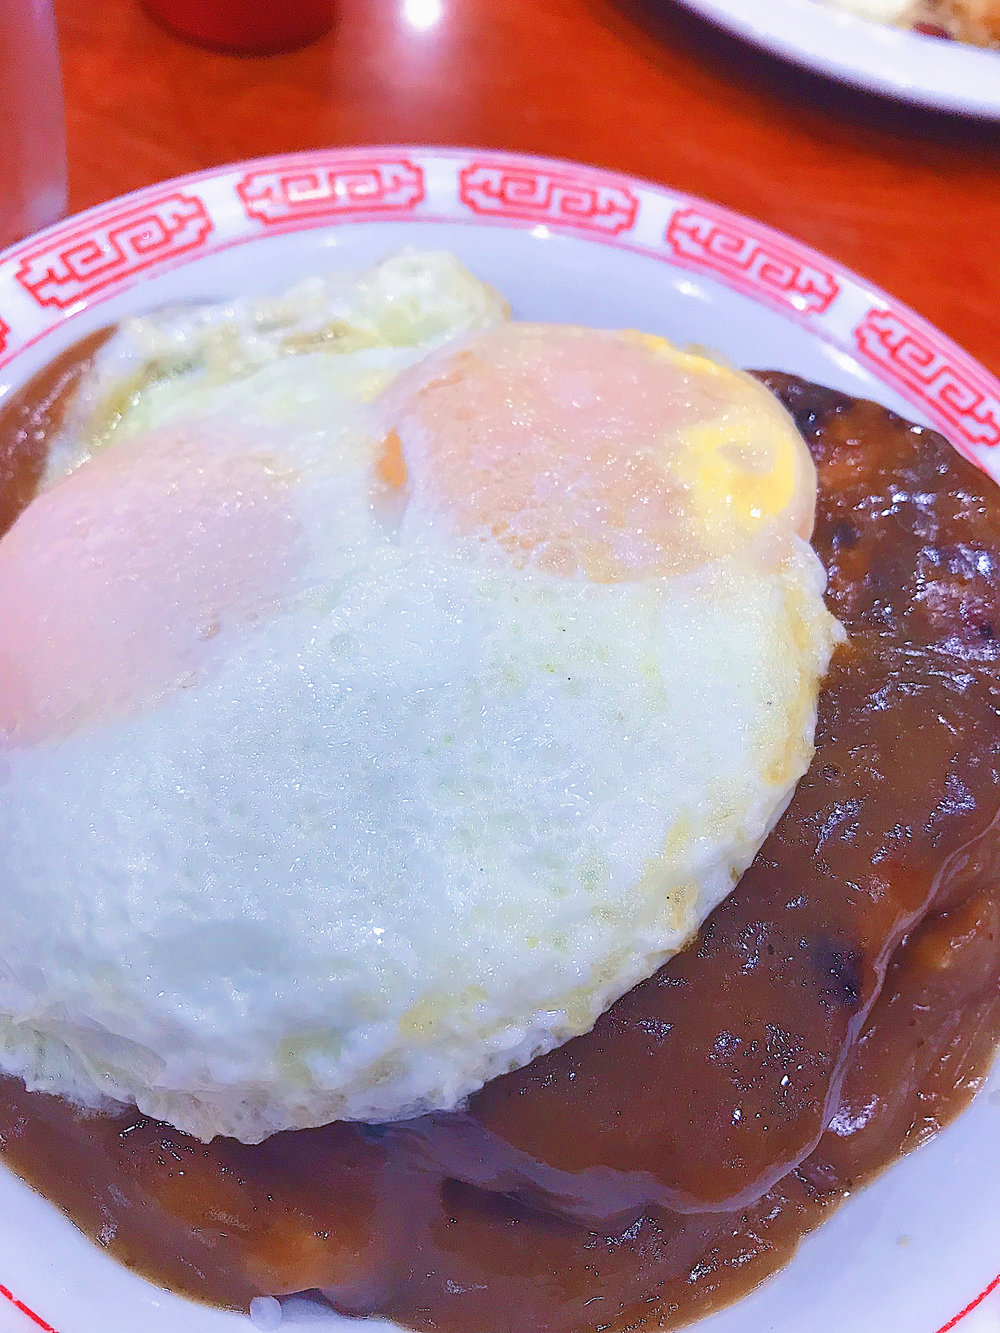 Zippy's. Loco Moco: A scoop of rice, hamburger steak, and fried egg all smothered in brown gravy.